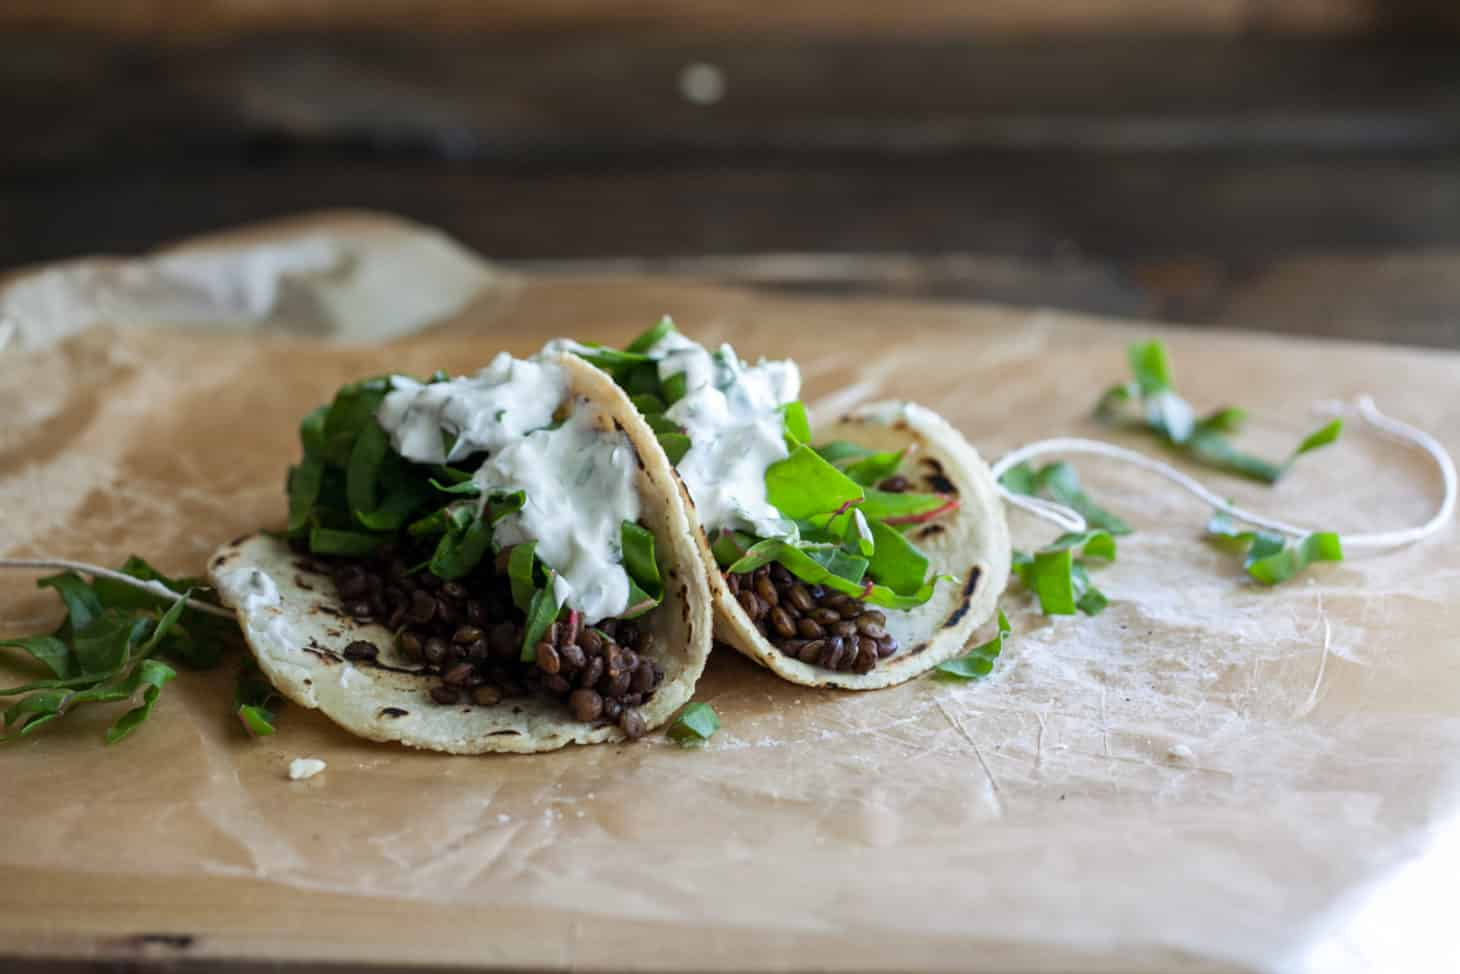 Lentil and Swiss Chard Tacos (with Homemade Tortillas)